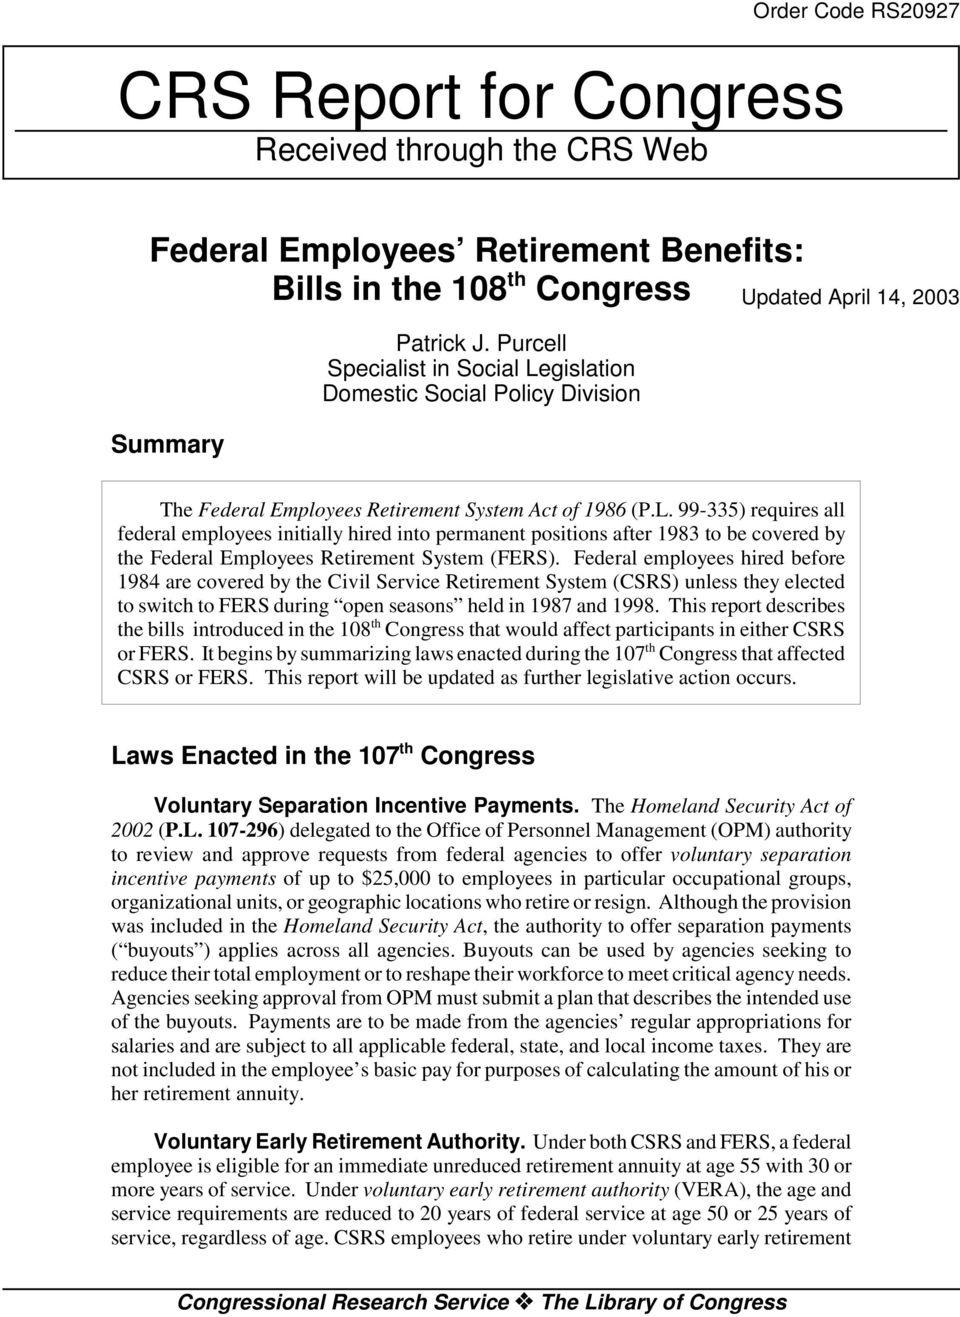 Federal employees hired before 1984 are covered by the Civil Service Retirement System (CSRS) unless they elected to switch to FERS during open seasons held in 1987 and 1998.